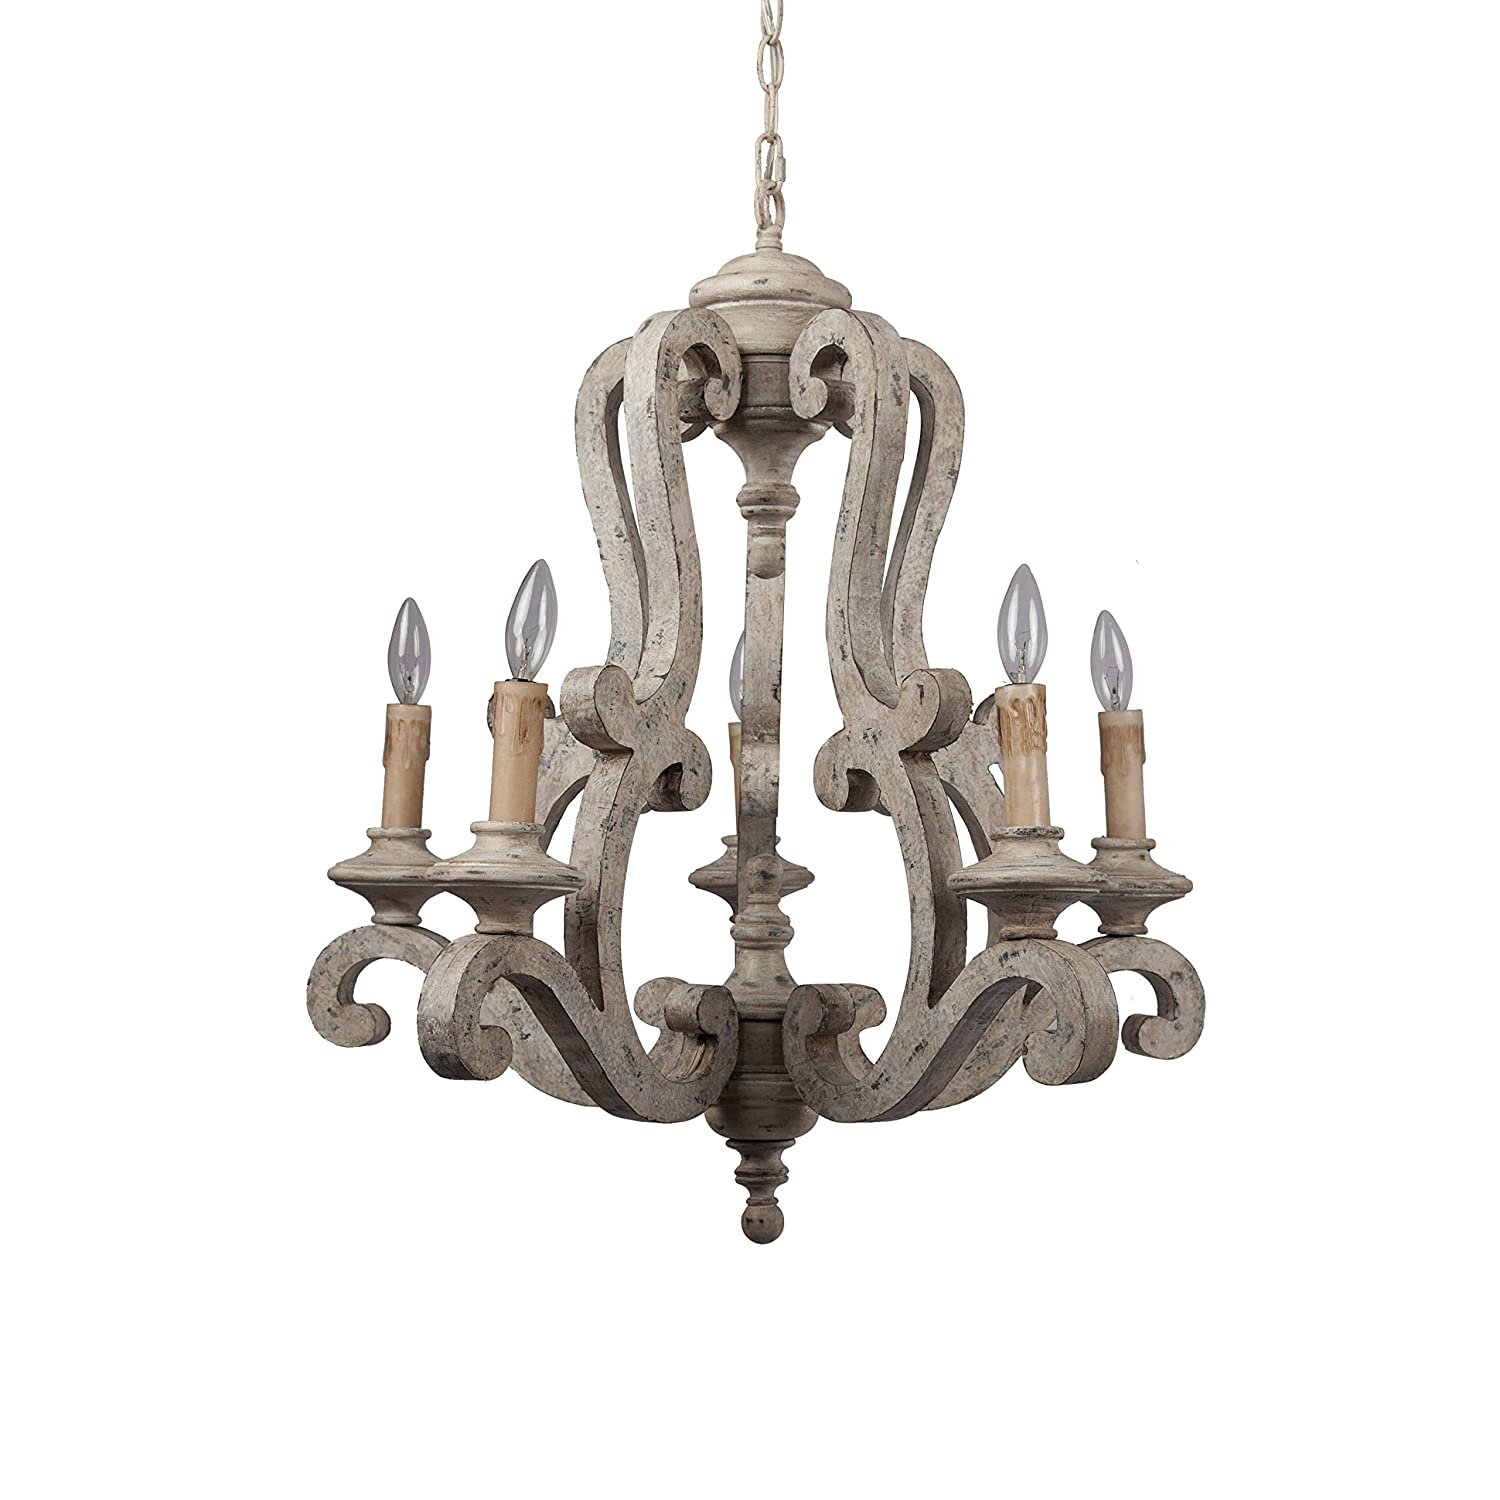 Rustic wood candle holder style chandelier is beautiful in dining areas, bedrooms, and kitchens when you want a European inspired, aged and retro look.